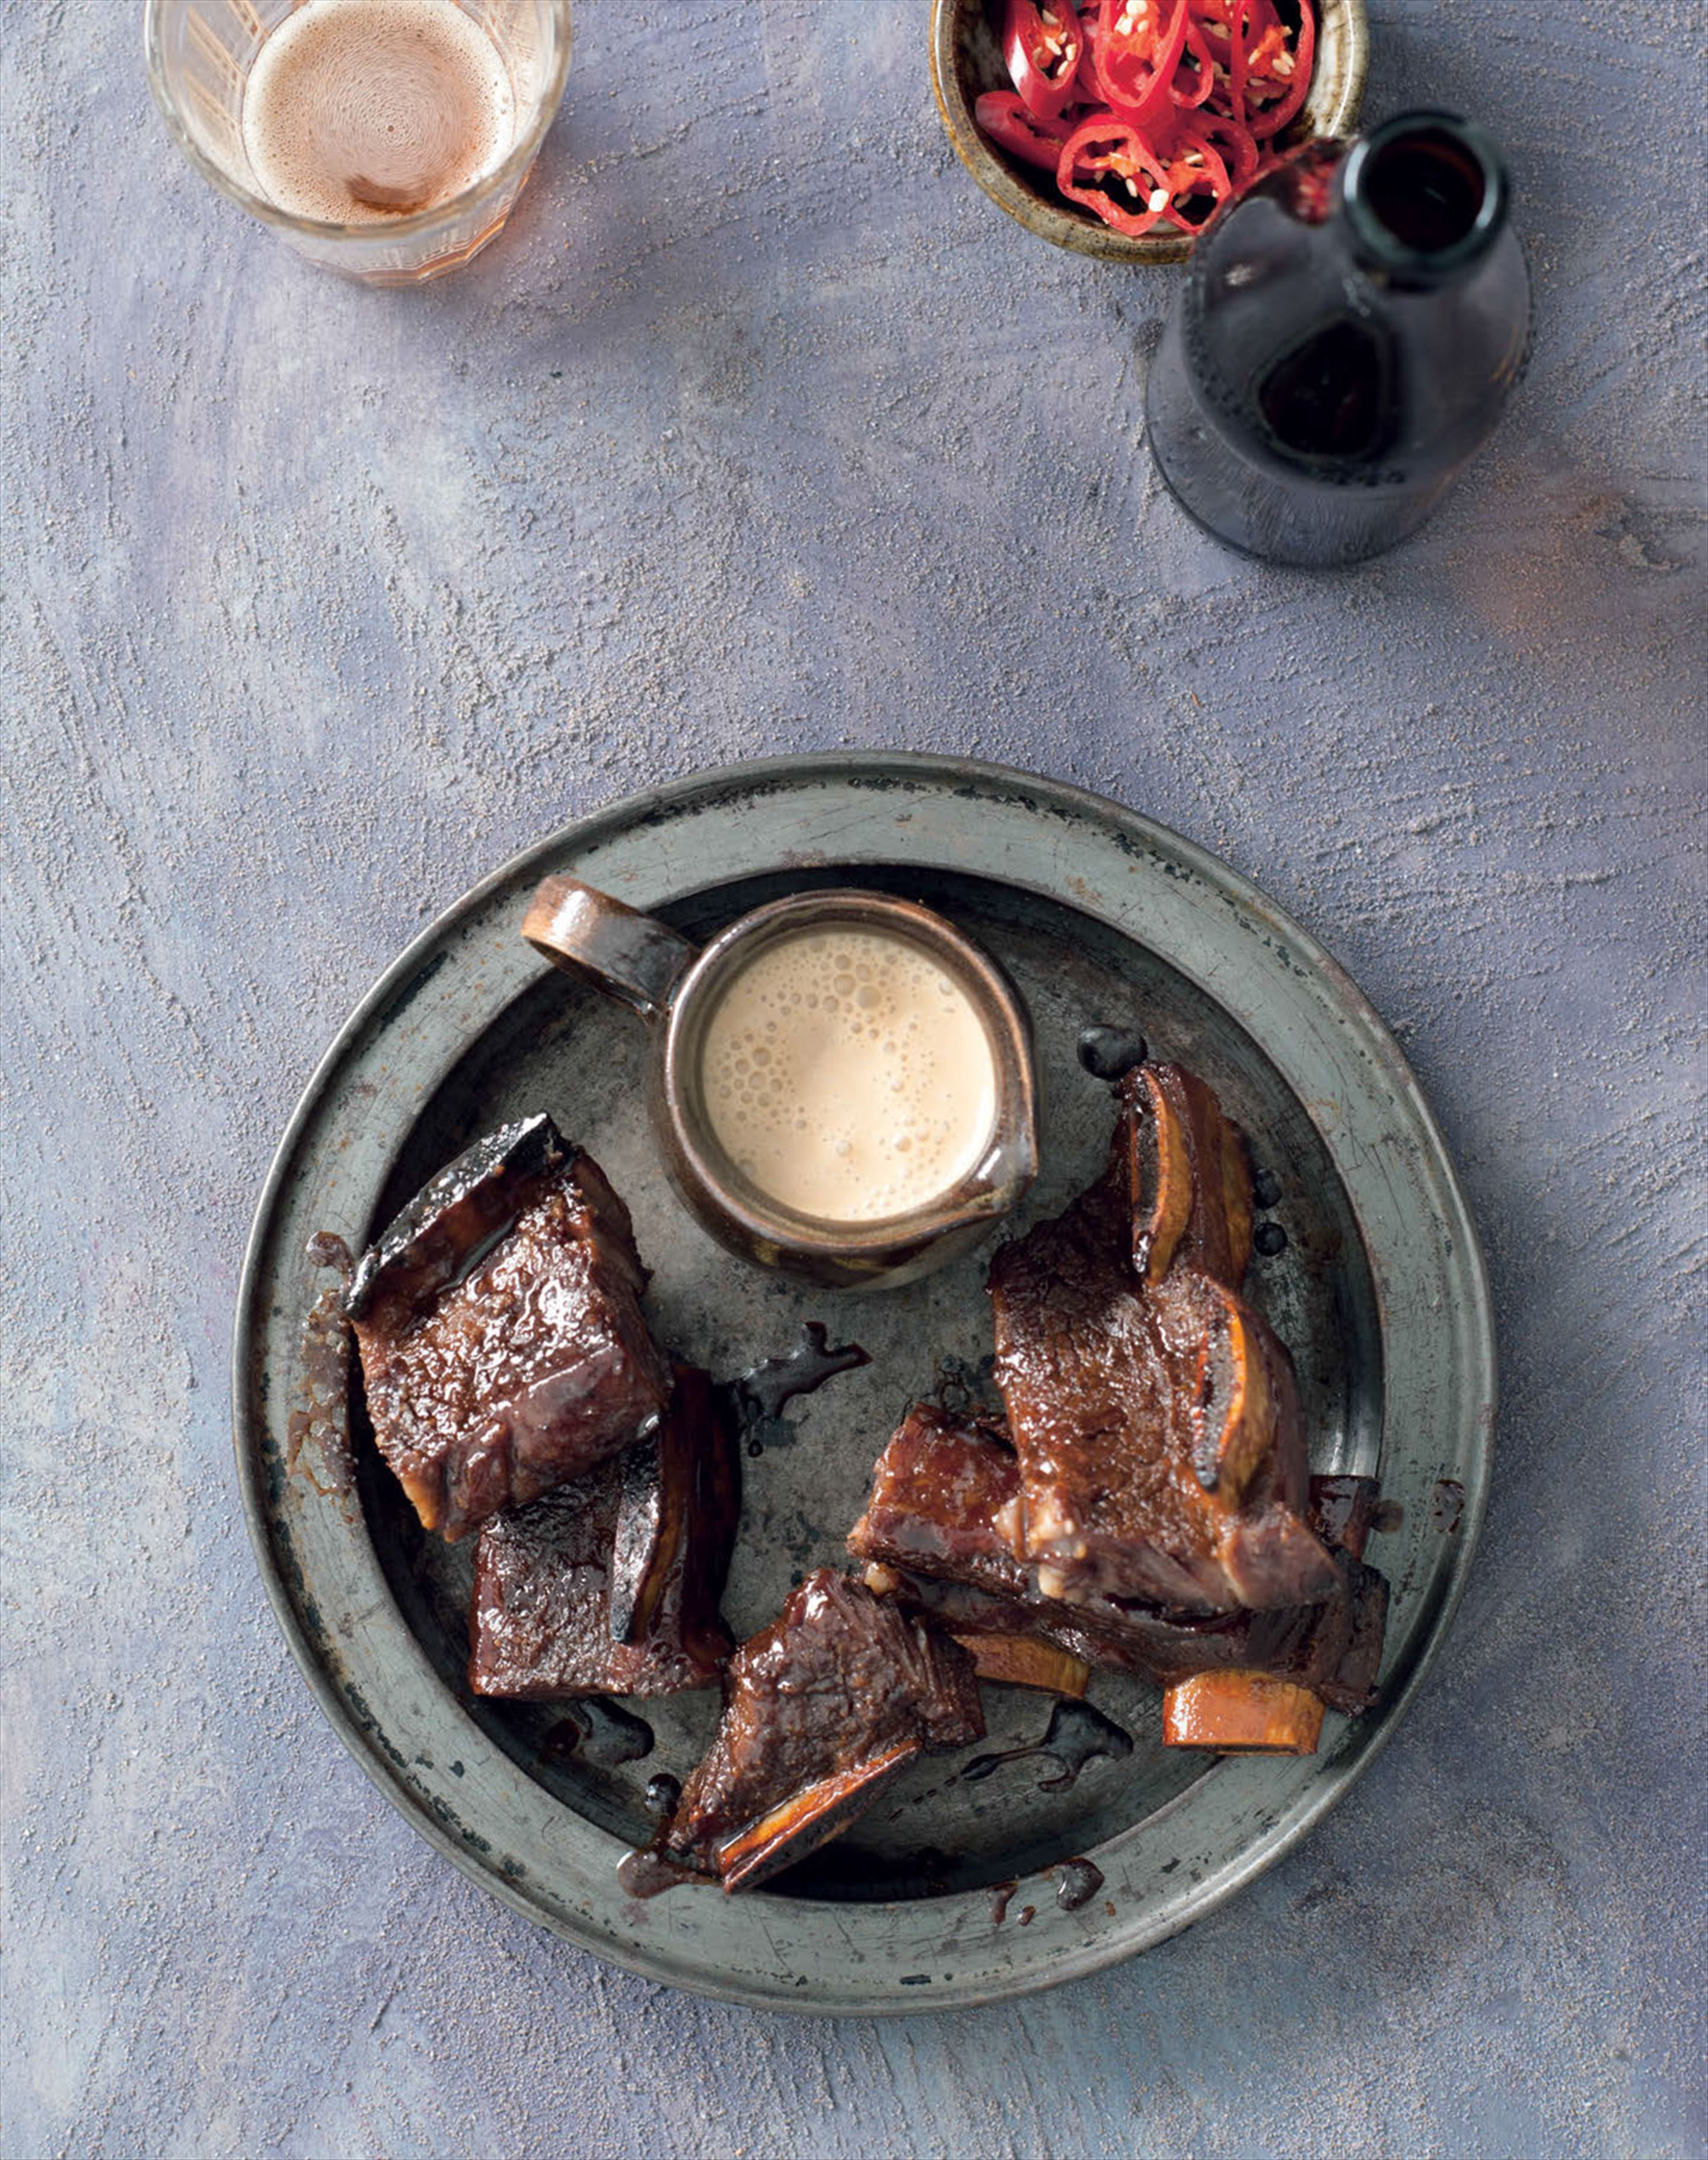 Coconut-glazed beef ribs